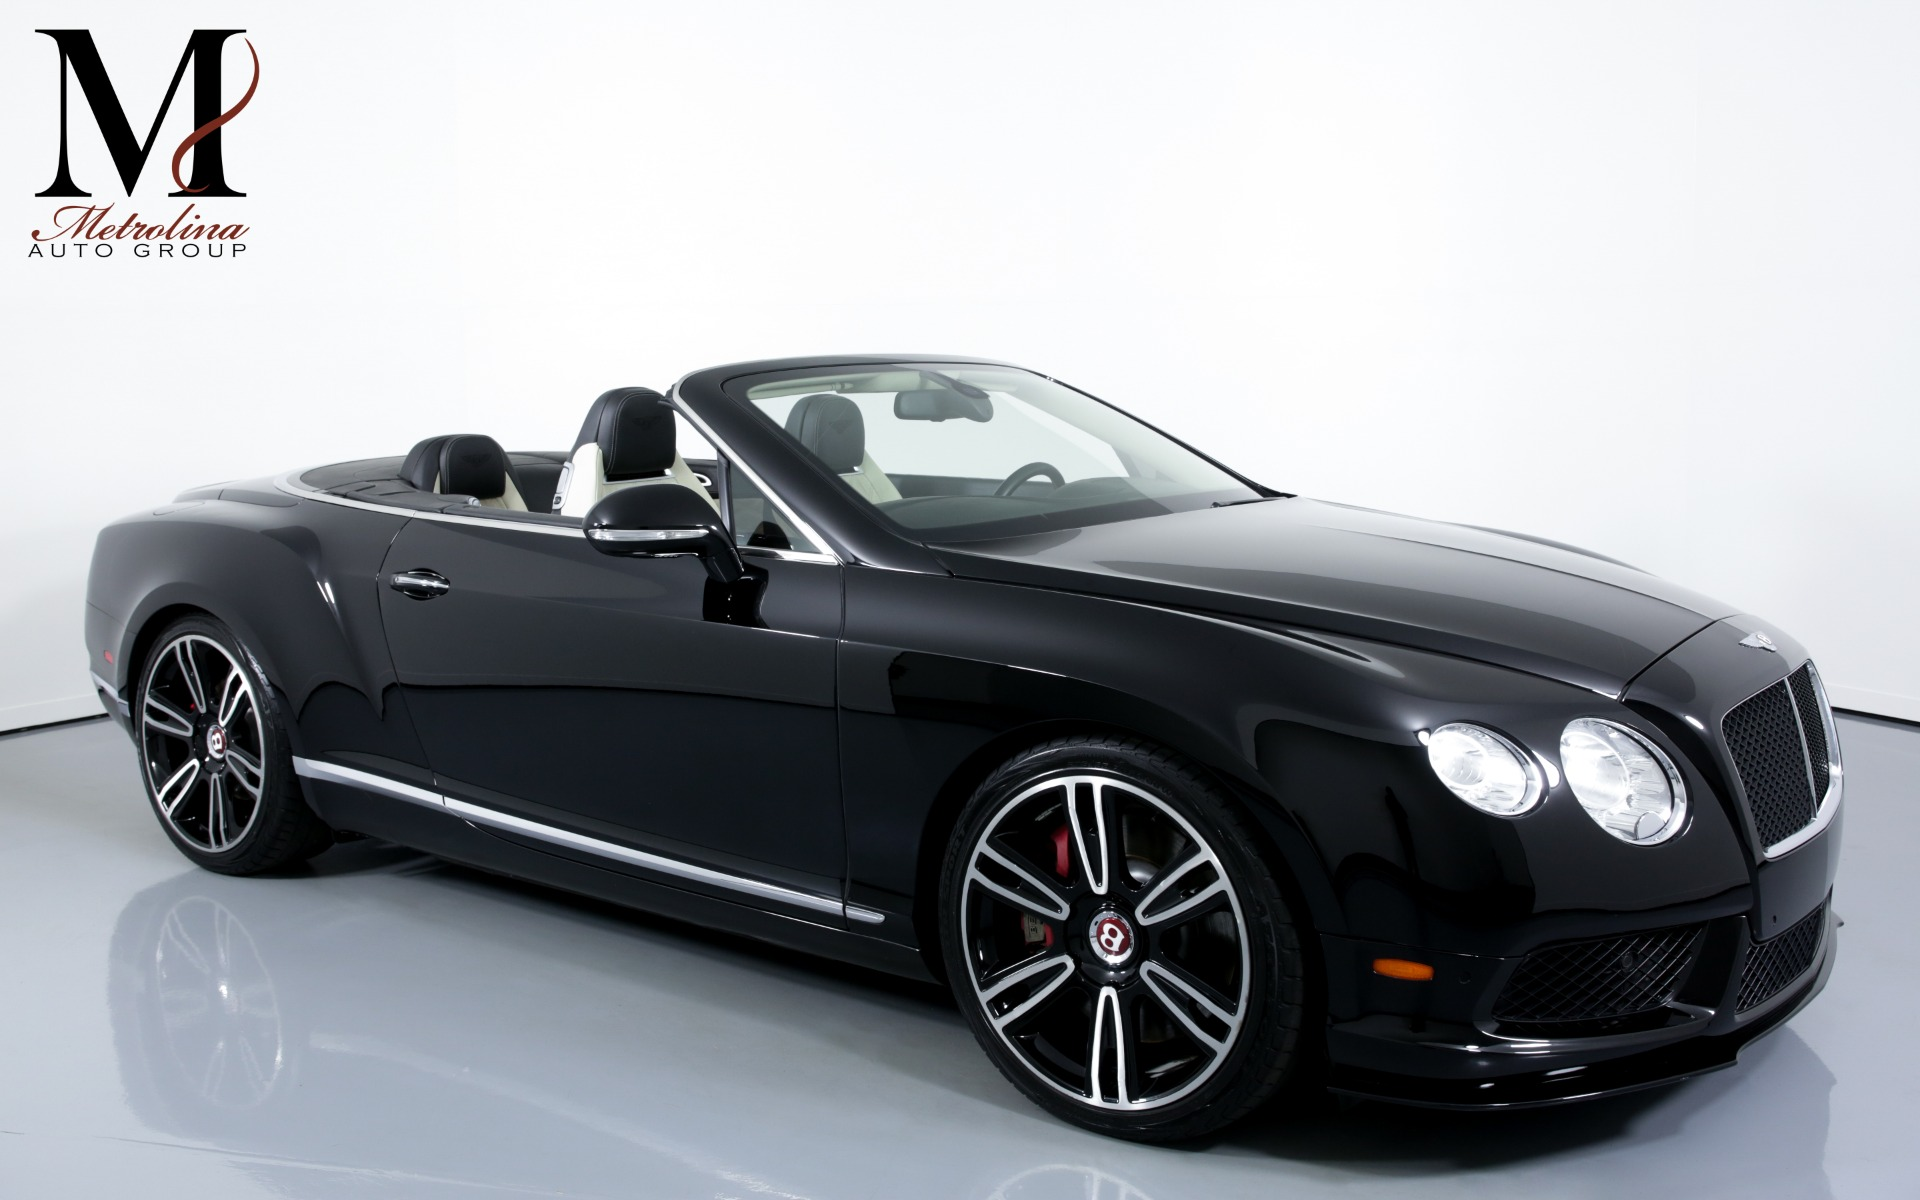 Used 2013 Bentley Continental GT V8 AWD 2dr Convertible for sale Sold at Metrolina Auto Group in Charlotte NC 28217 - 1